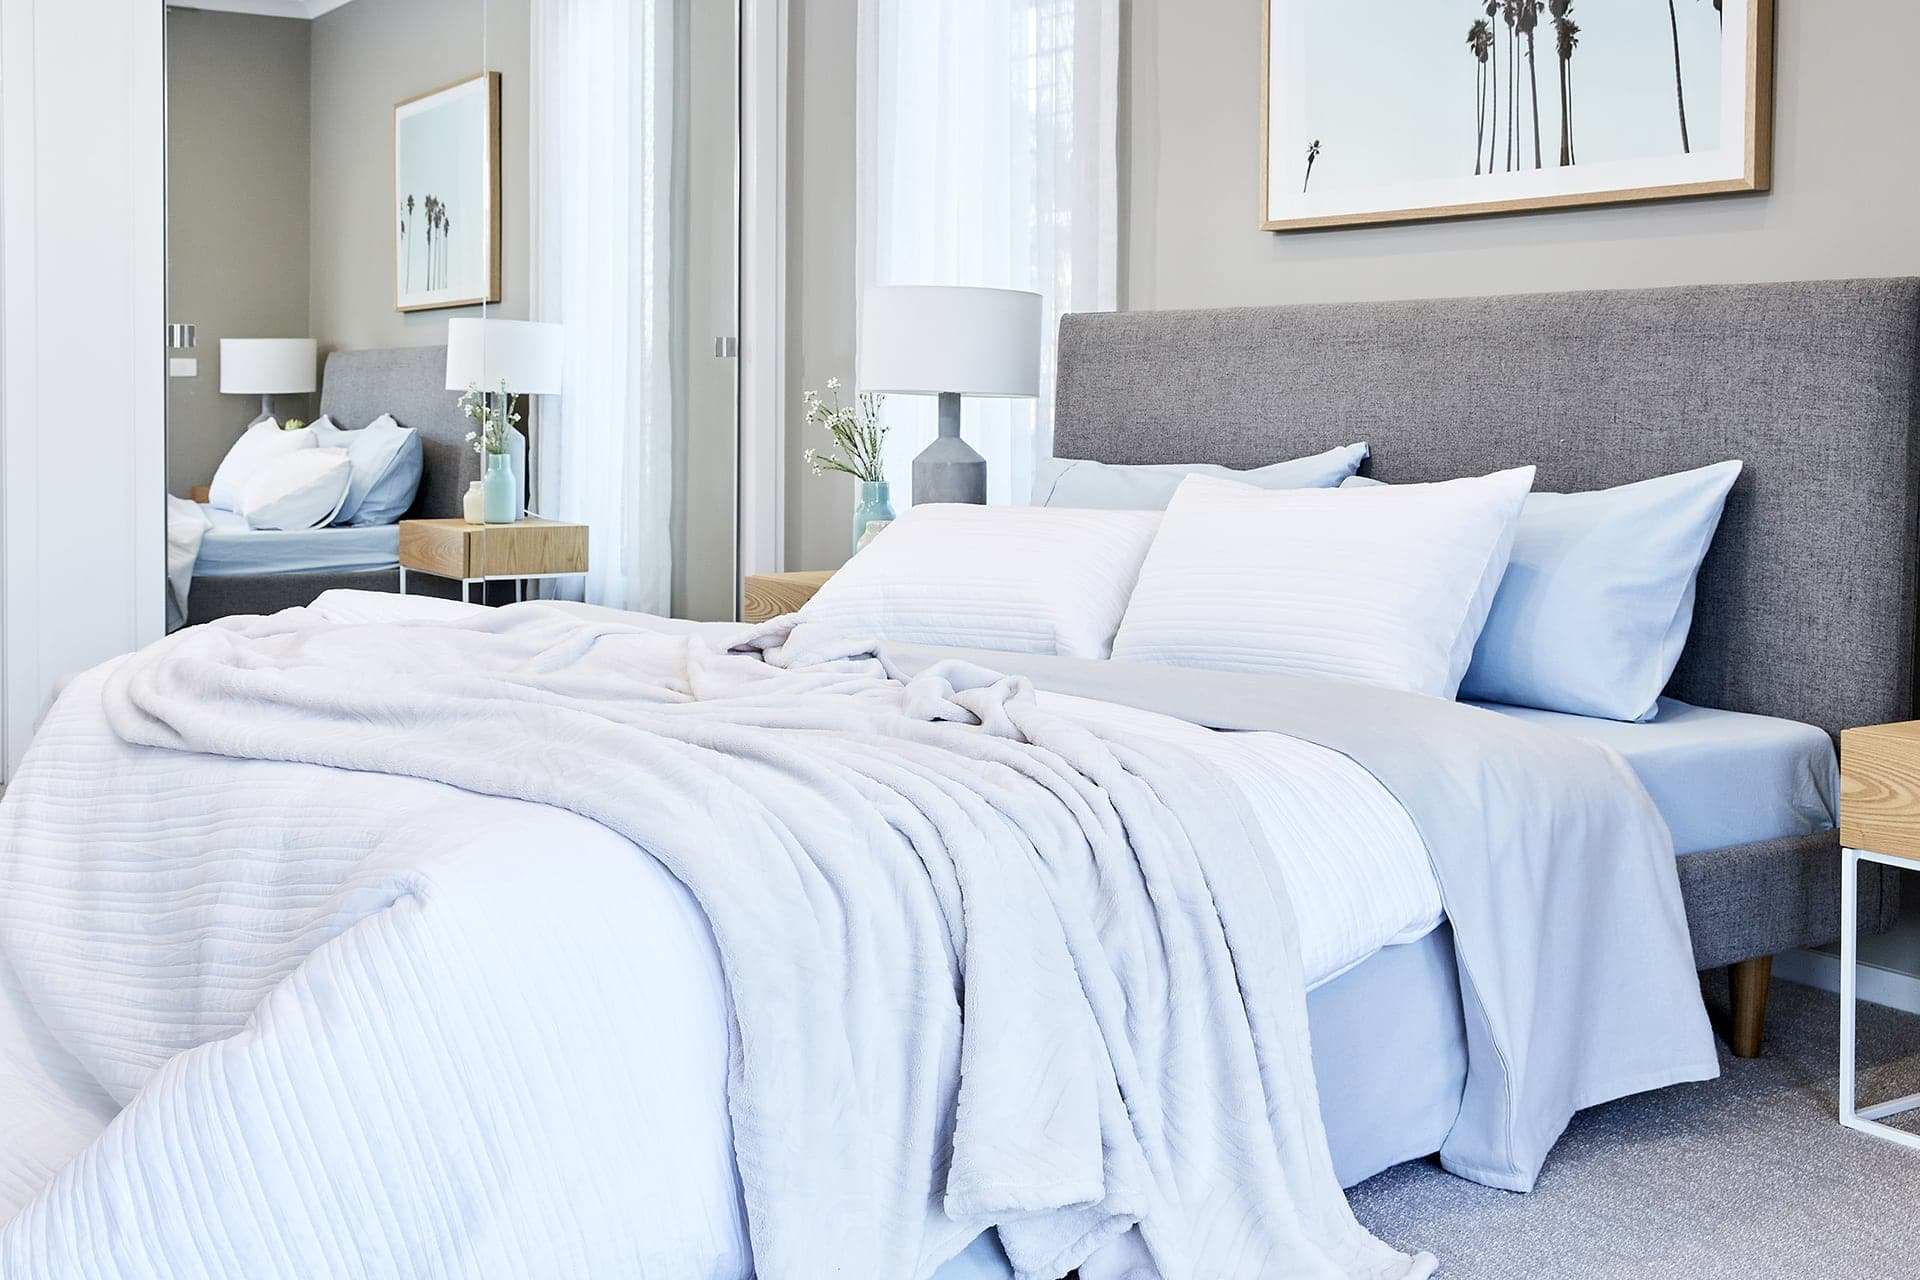 flannelette sheet set in pale blue and white from lorraine lea